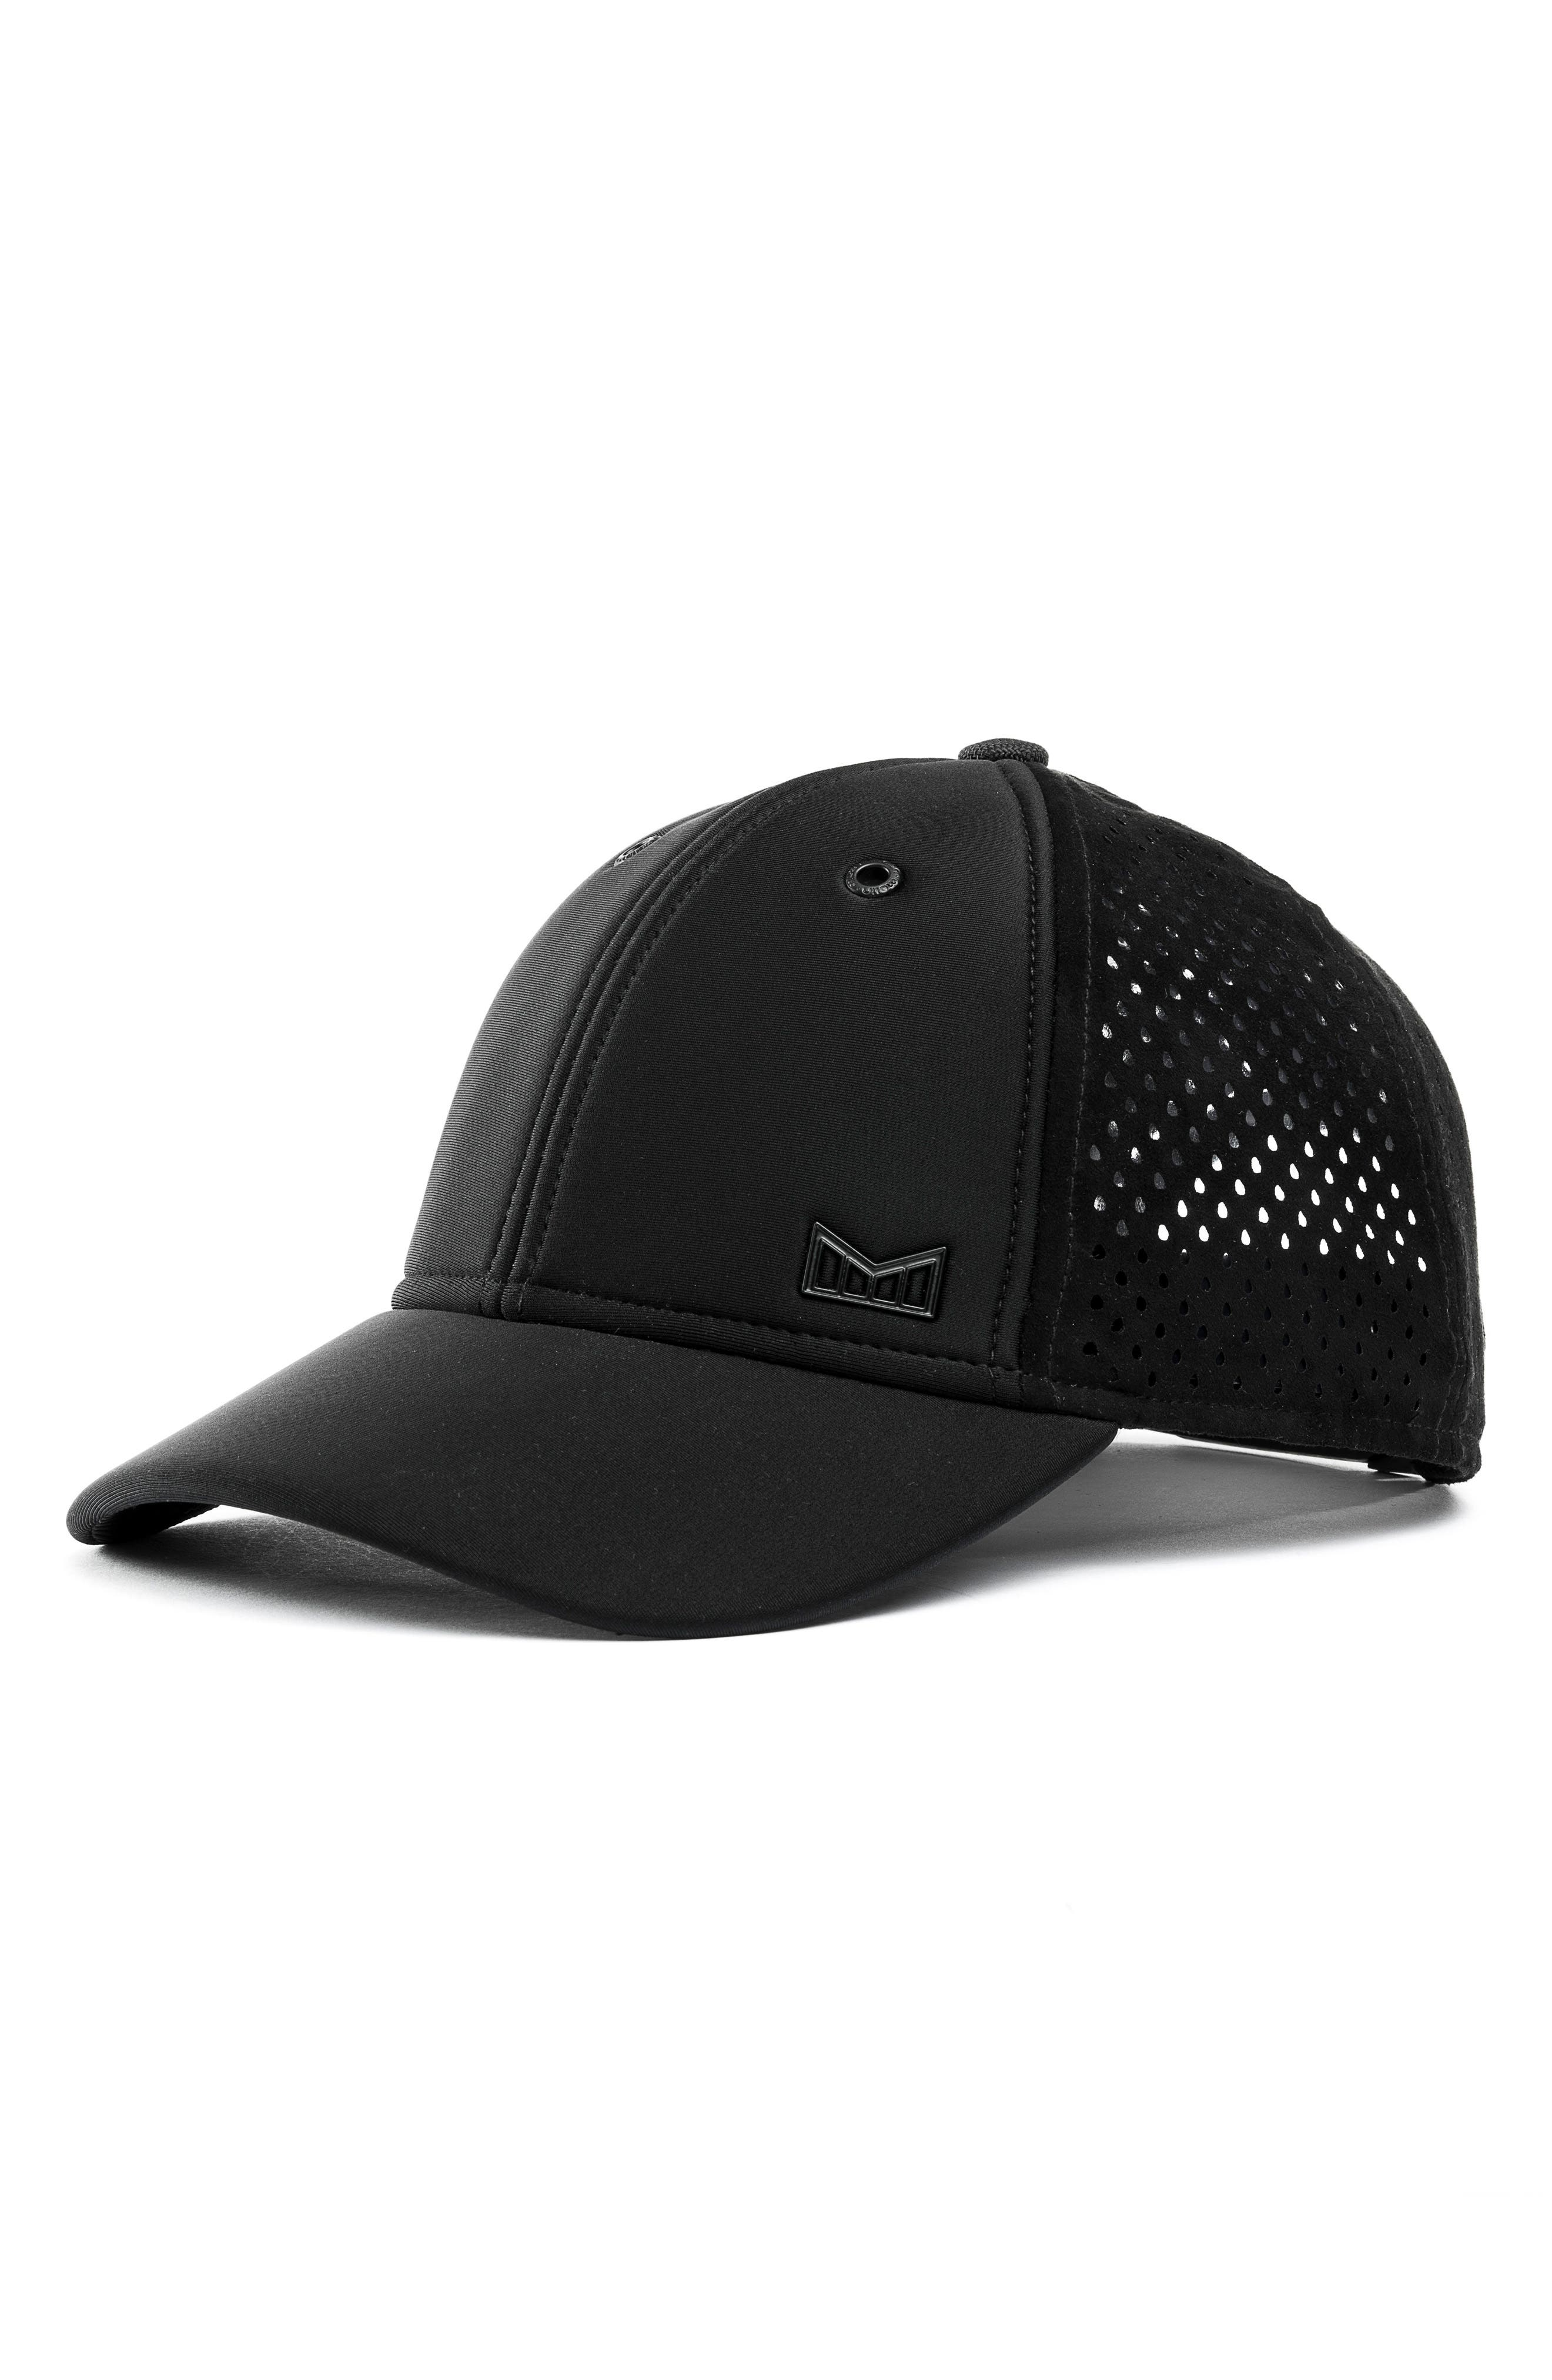 Melin Trooper II Snapback Baseball Cap